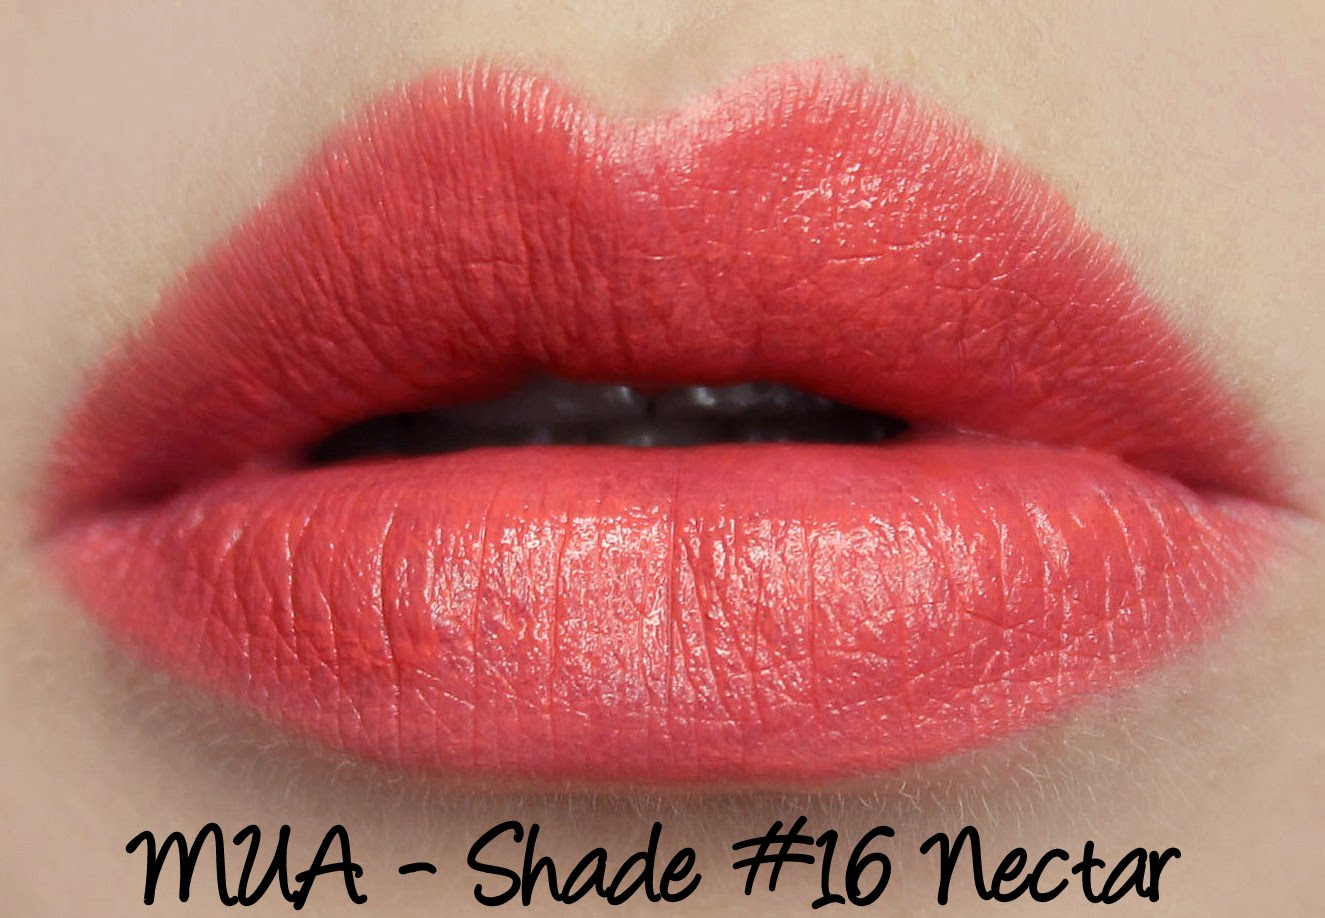 MUA Lipsticks - #16 Nectar Swatches & Review